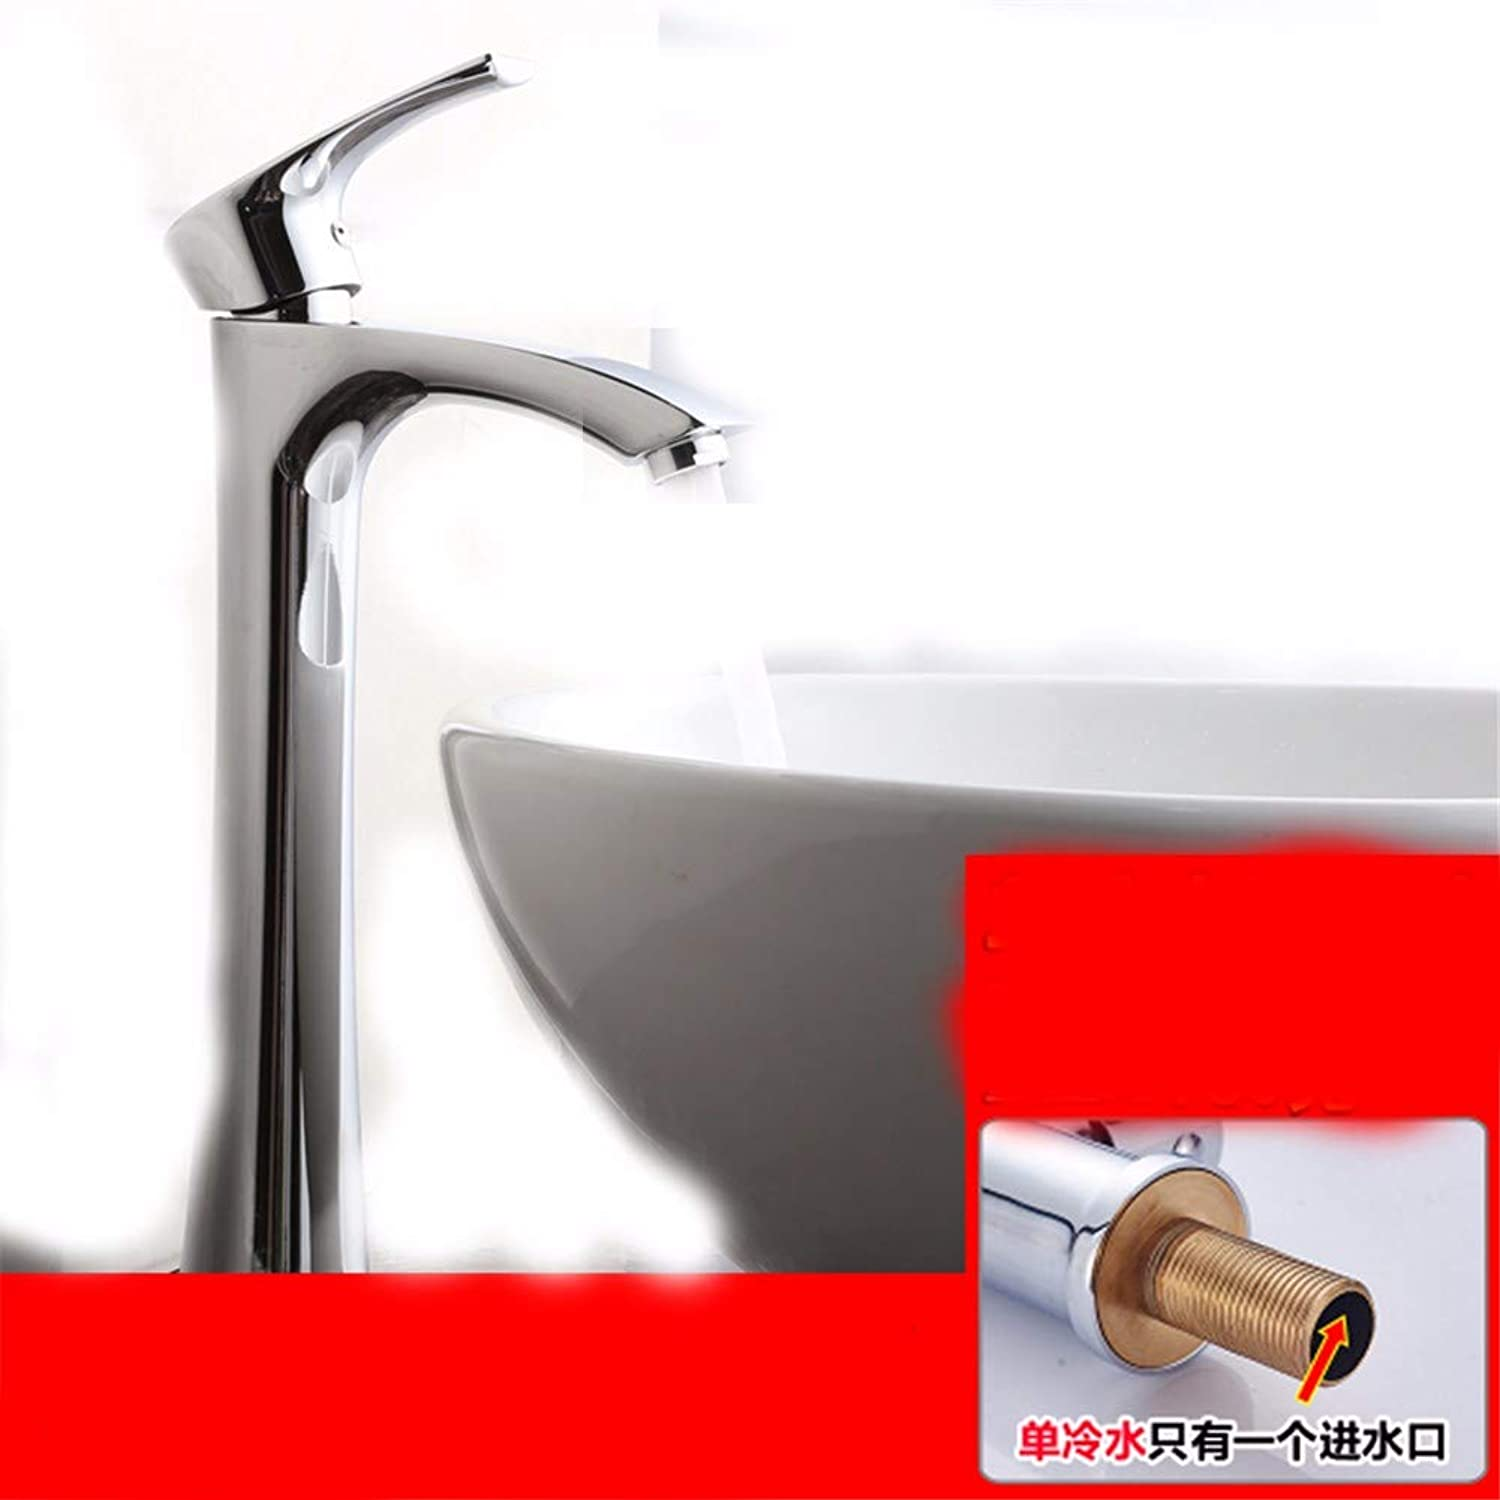 Chongxlgy-1 Faucet Hot and Cold Copper Single Cold Washbasin Above Counter Basin Wash Basin Faucet Single Hole Basin Basin, A Section Single Cold High Section